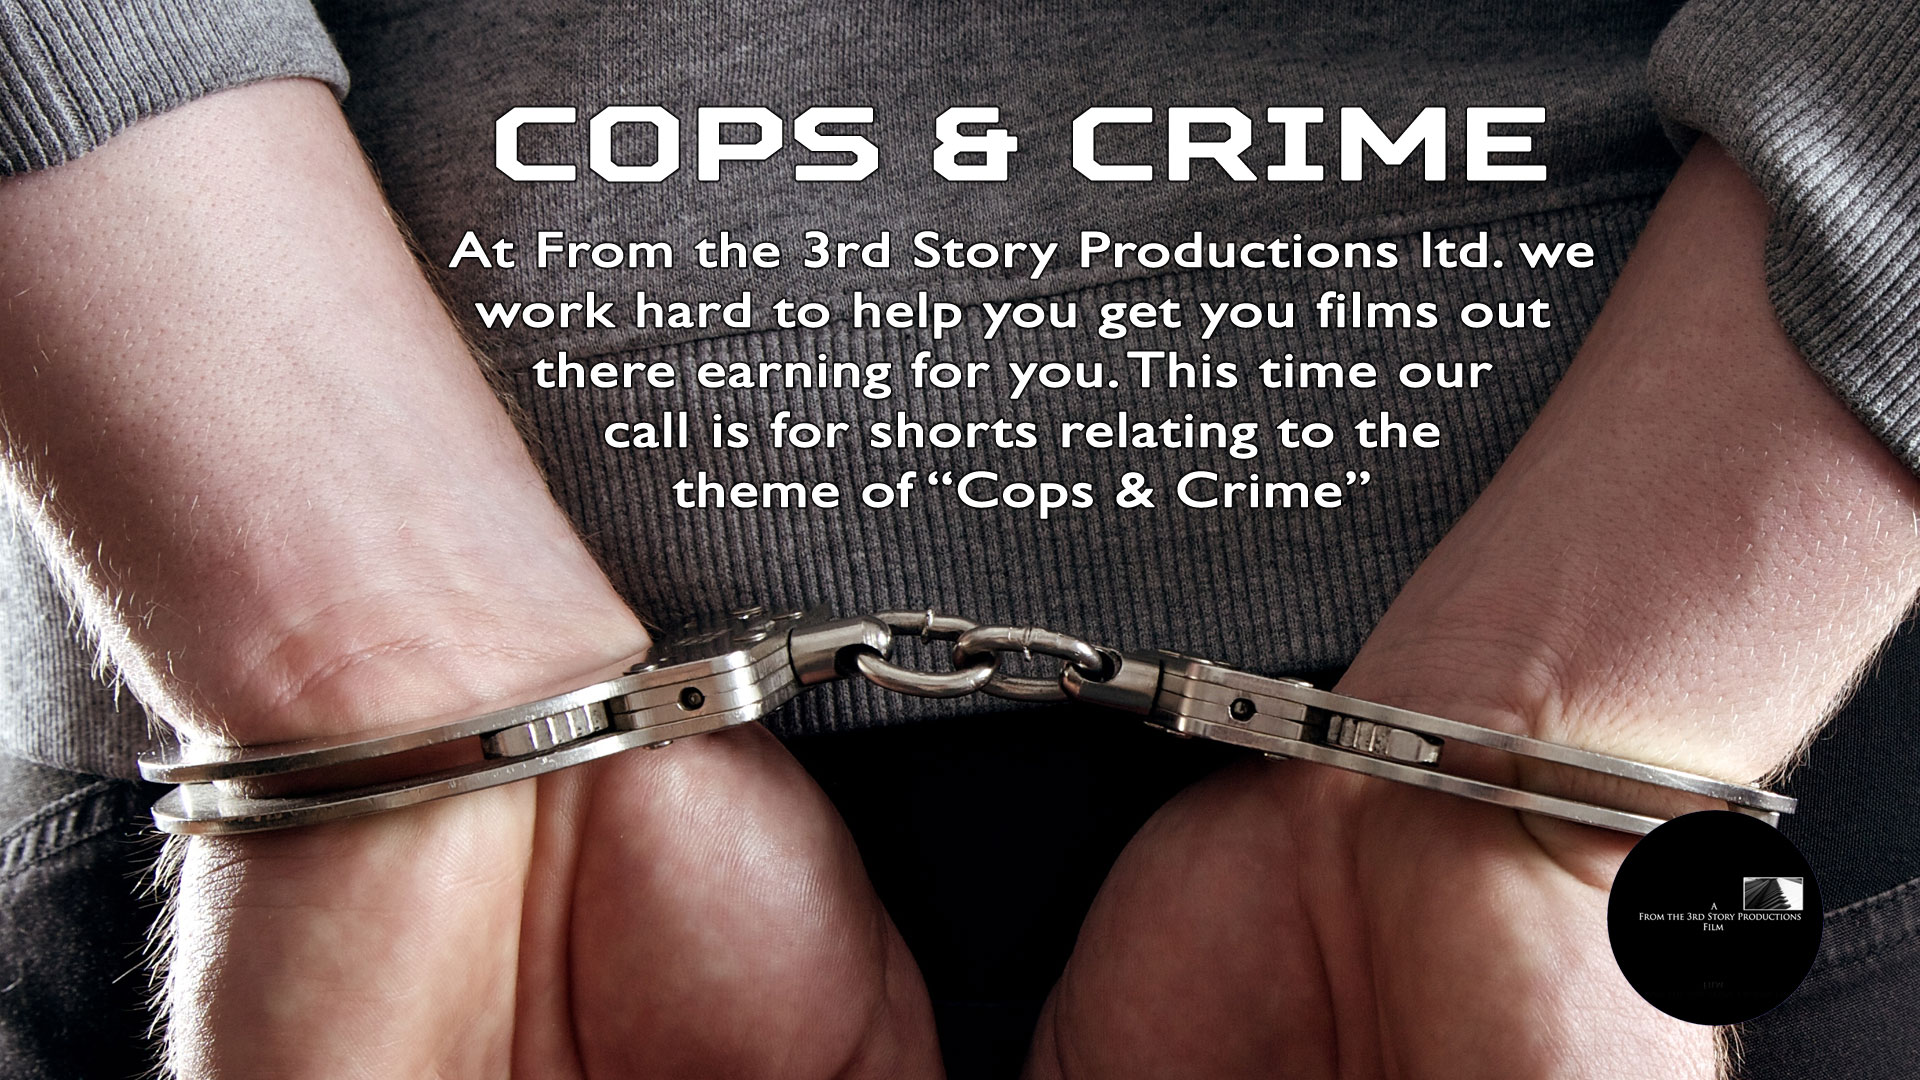 Cops and Crime - Welcome to From the 3rd Story Productions Ltd </br> Film Production, Post-Production and Distribution